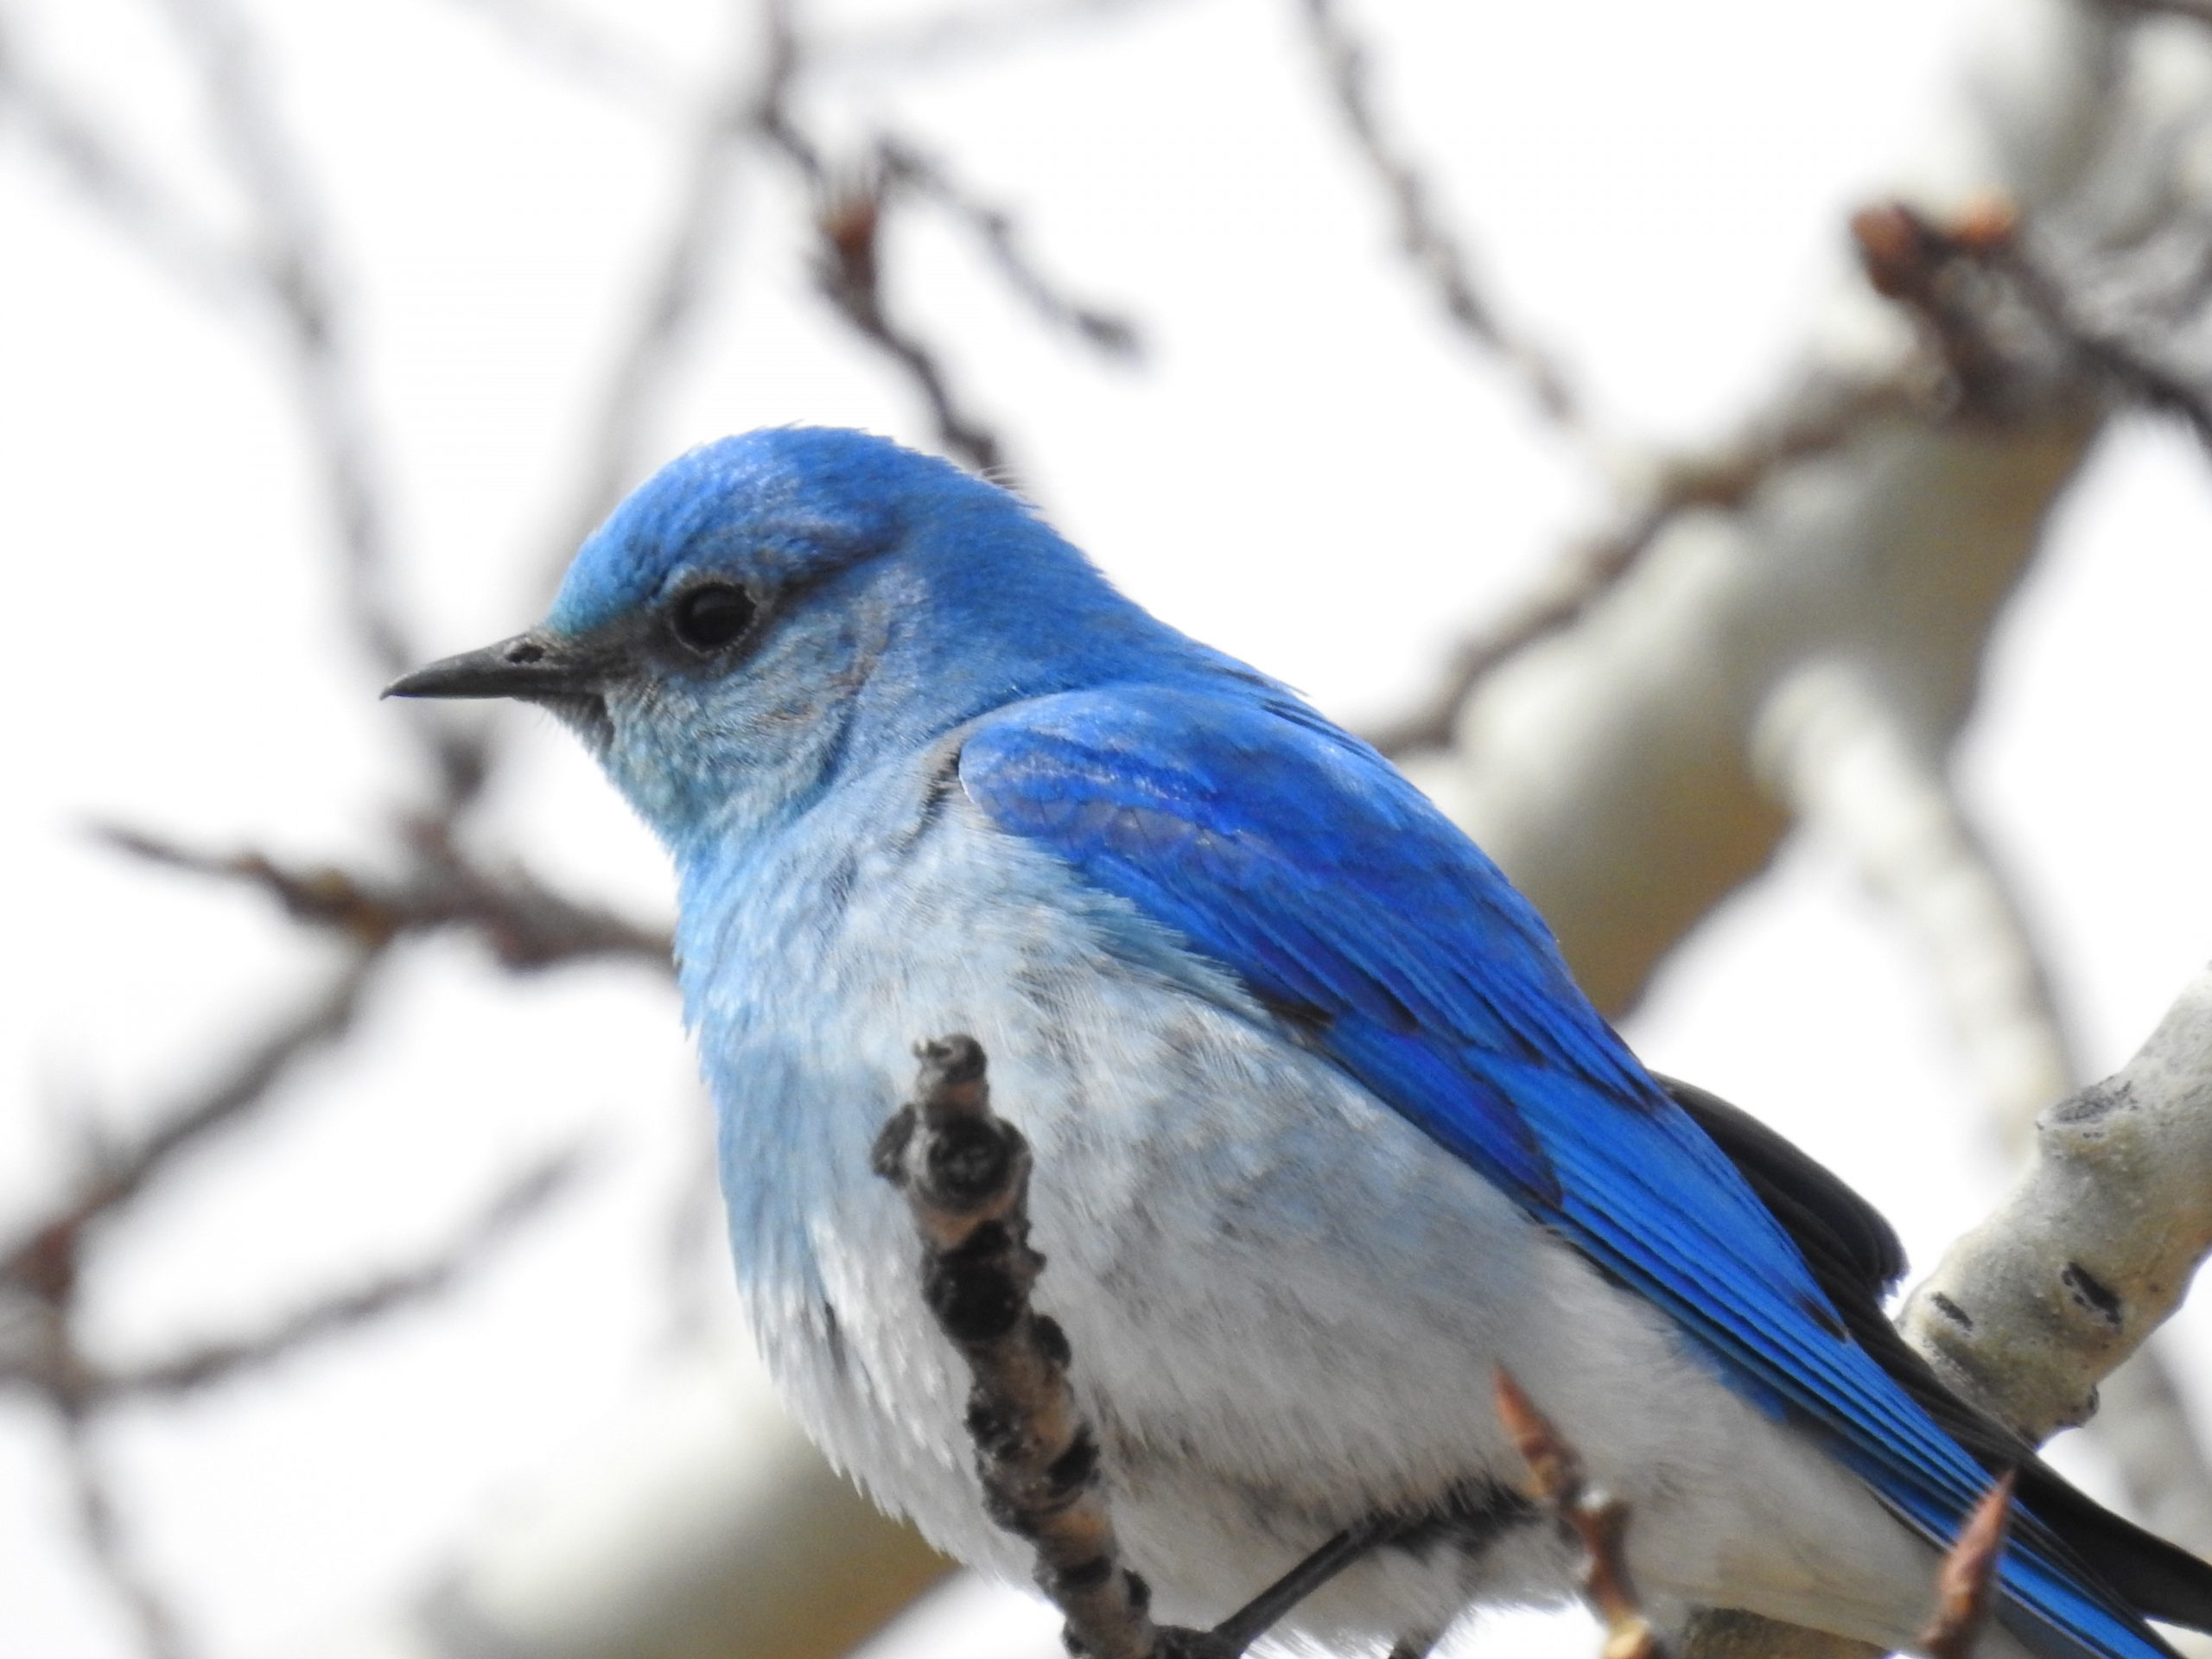 Blue bird on a branch - Canadian Mortgage Pros